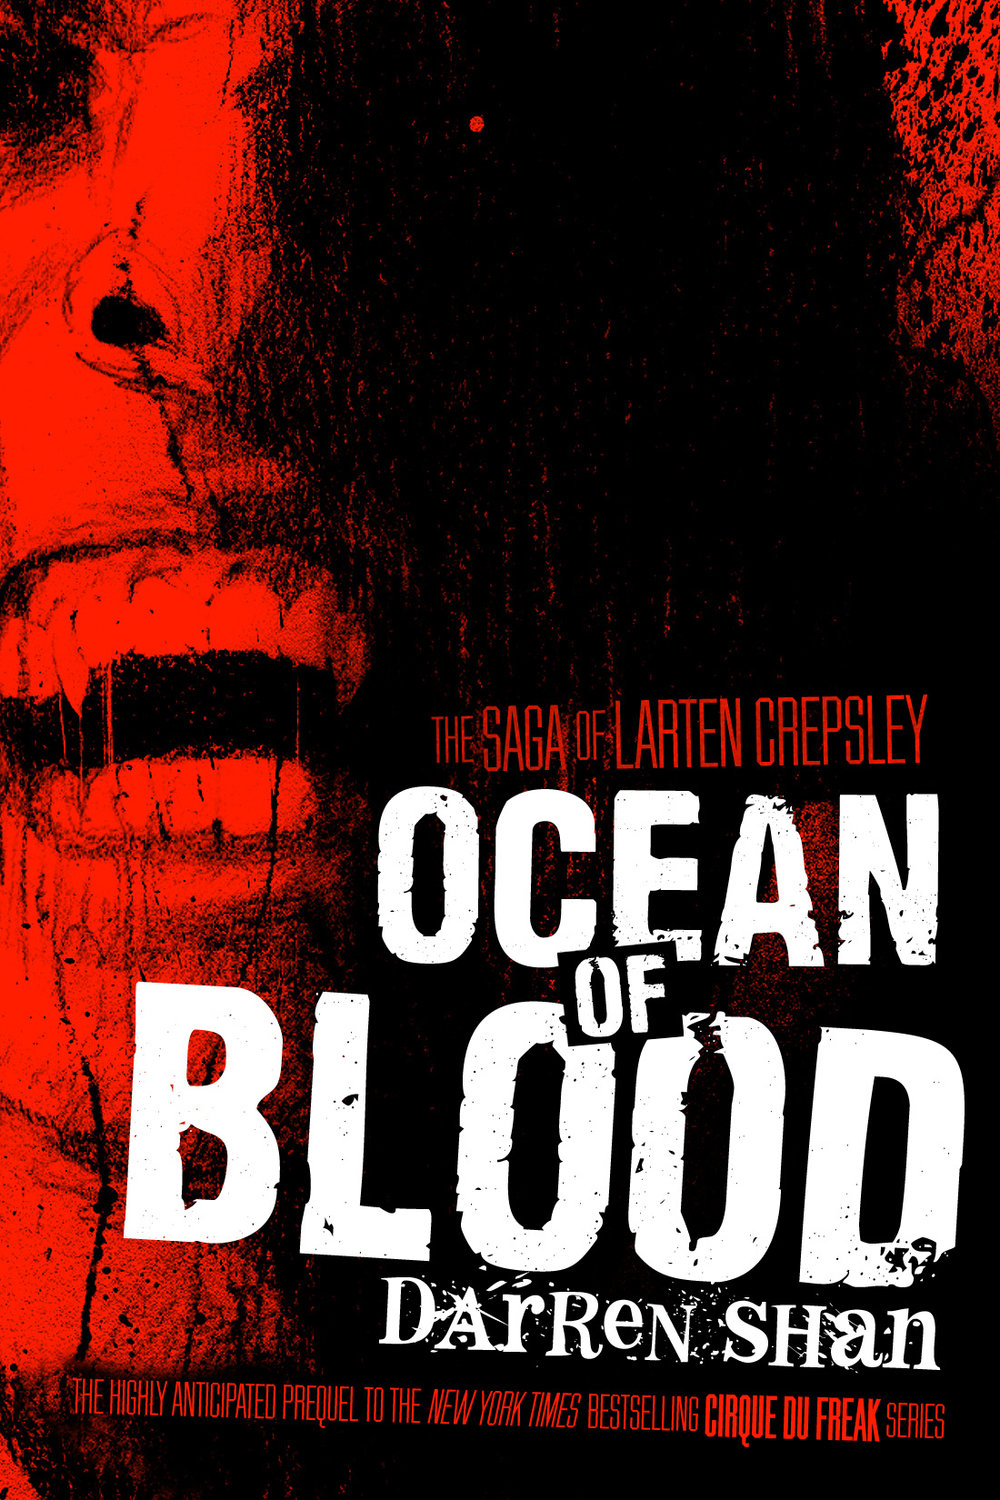 The Saga of Larten Crepsley: Ocean of Blood Paperback by Darren Shan Designed by Ben Mautner for Little, Brown Illustrated by Sam Weber